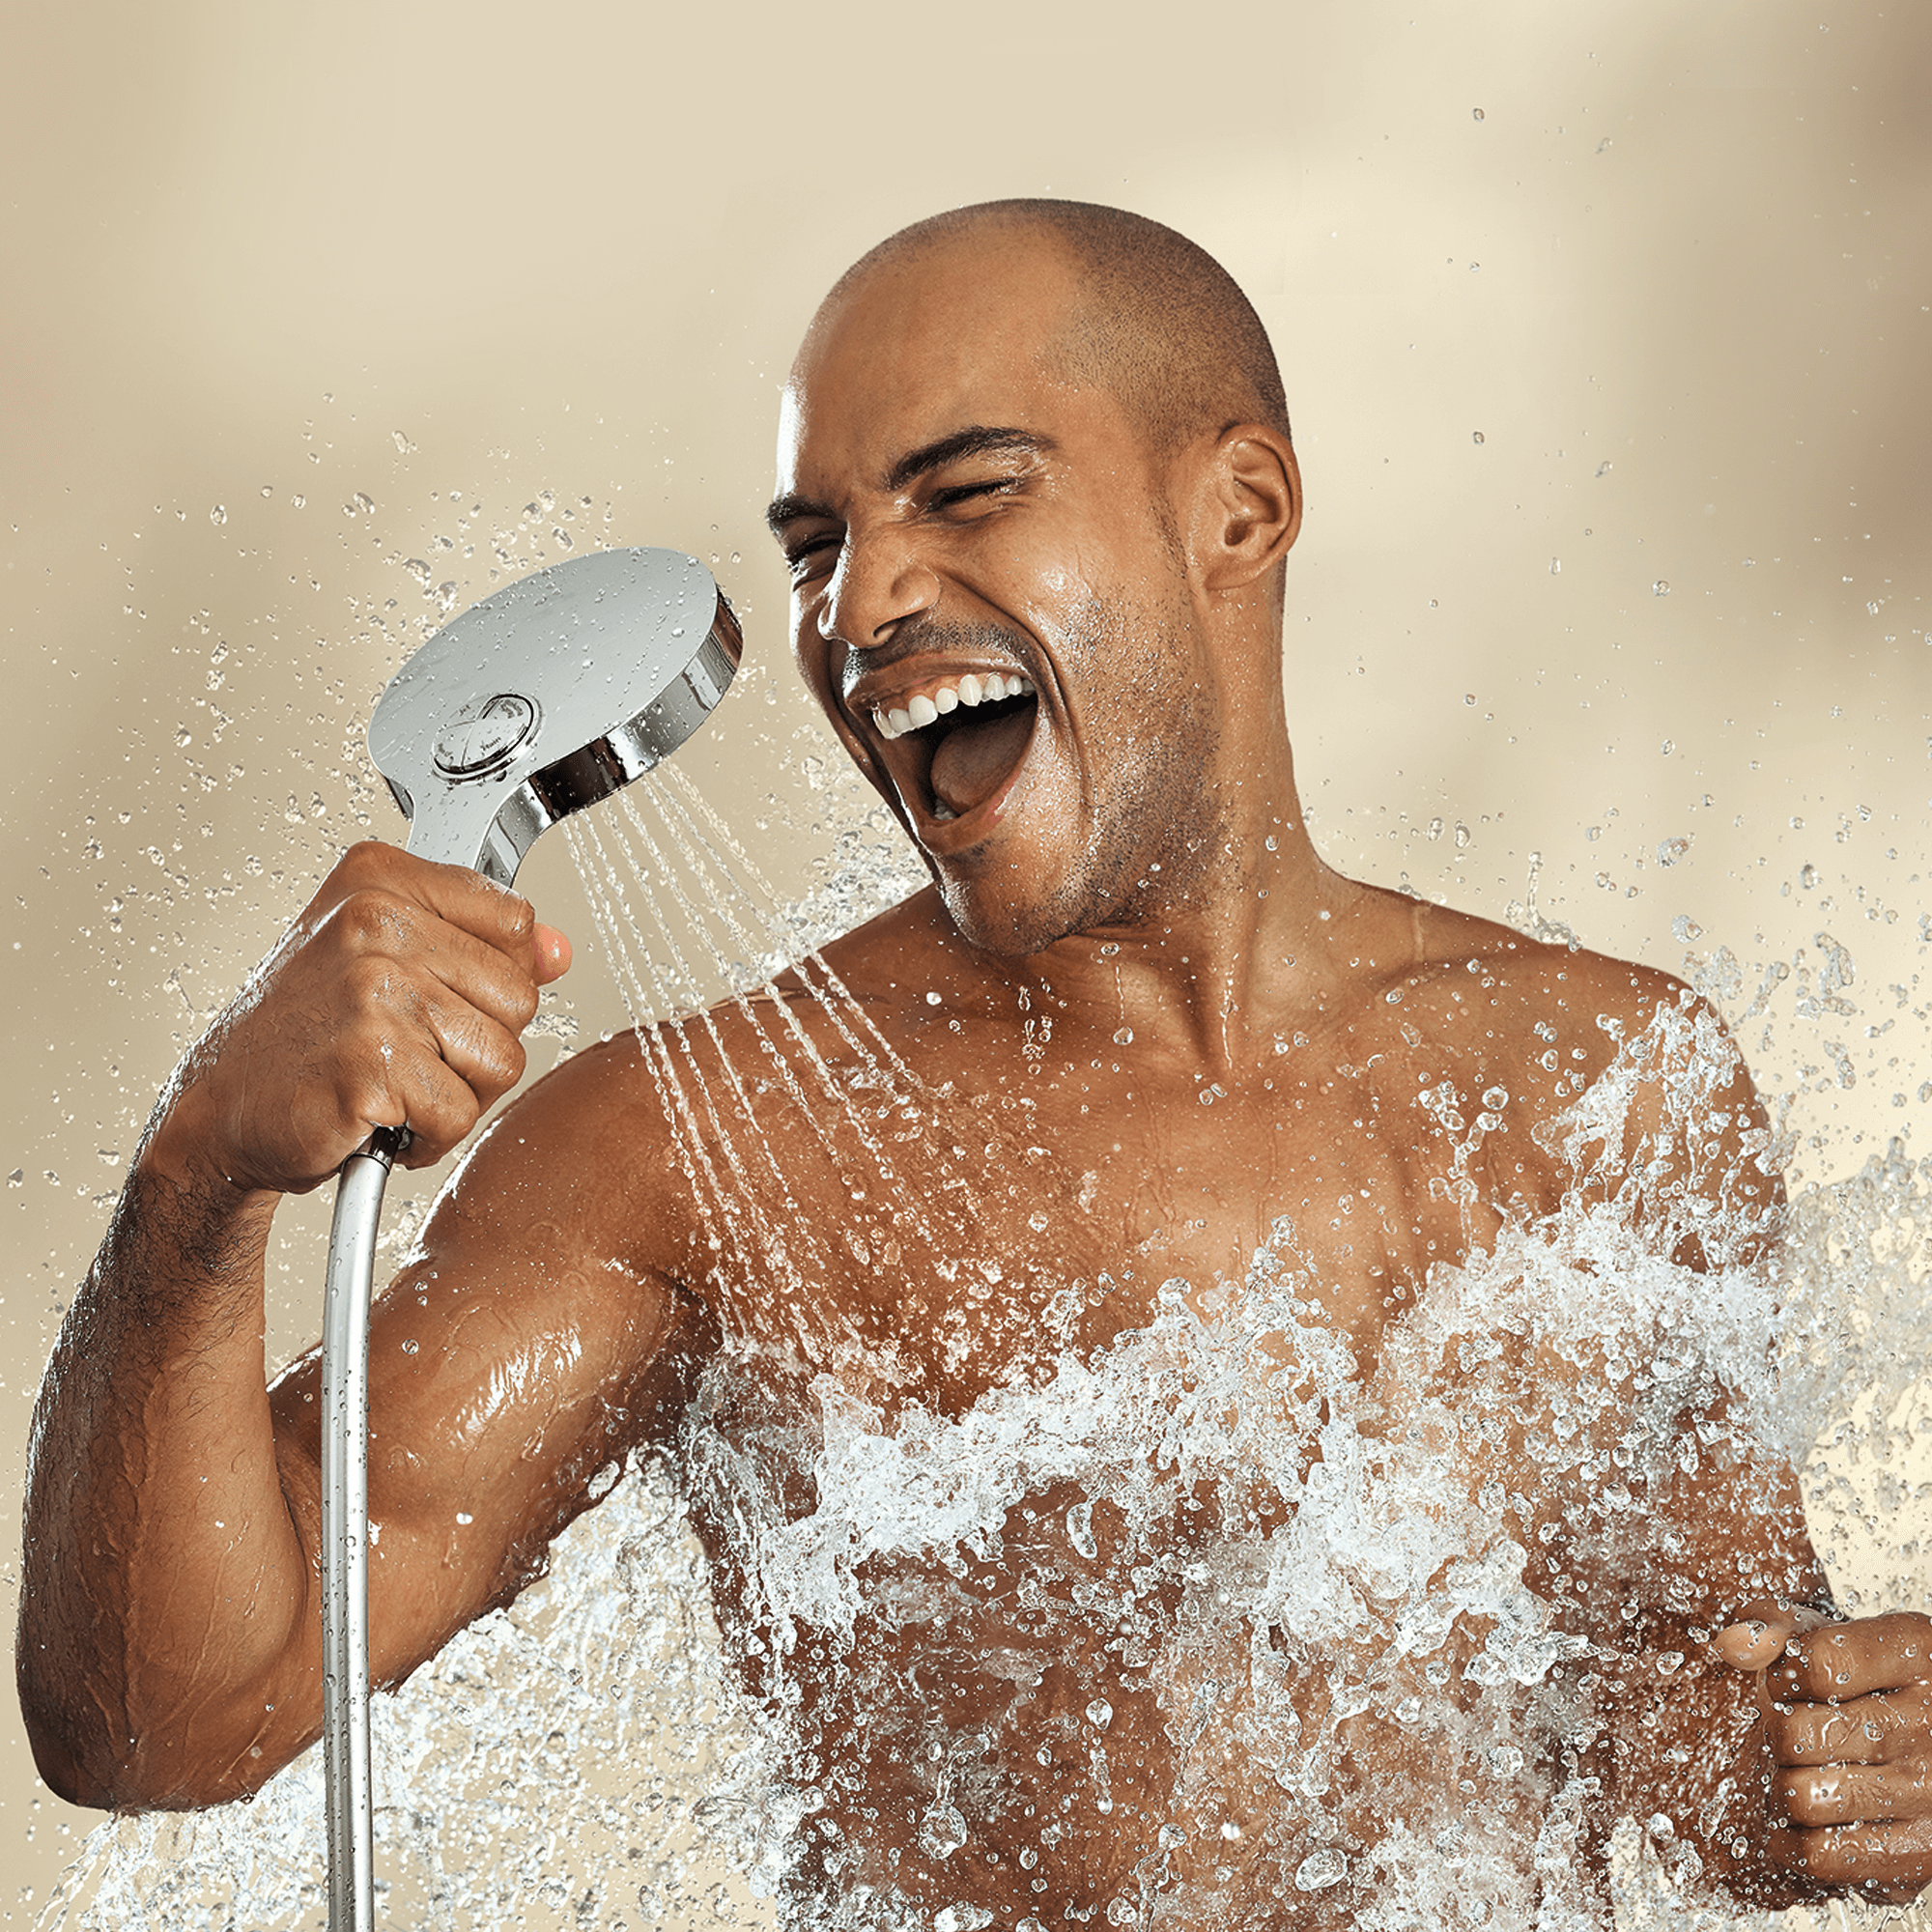 man showering using handheld showerhead